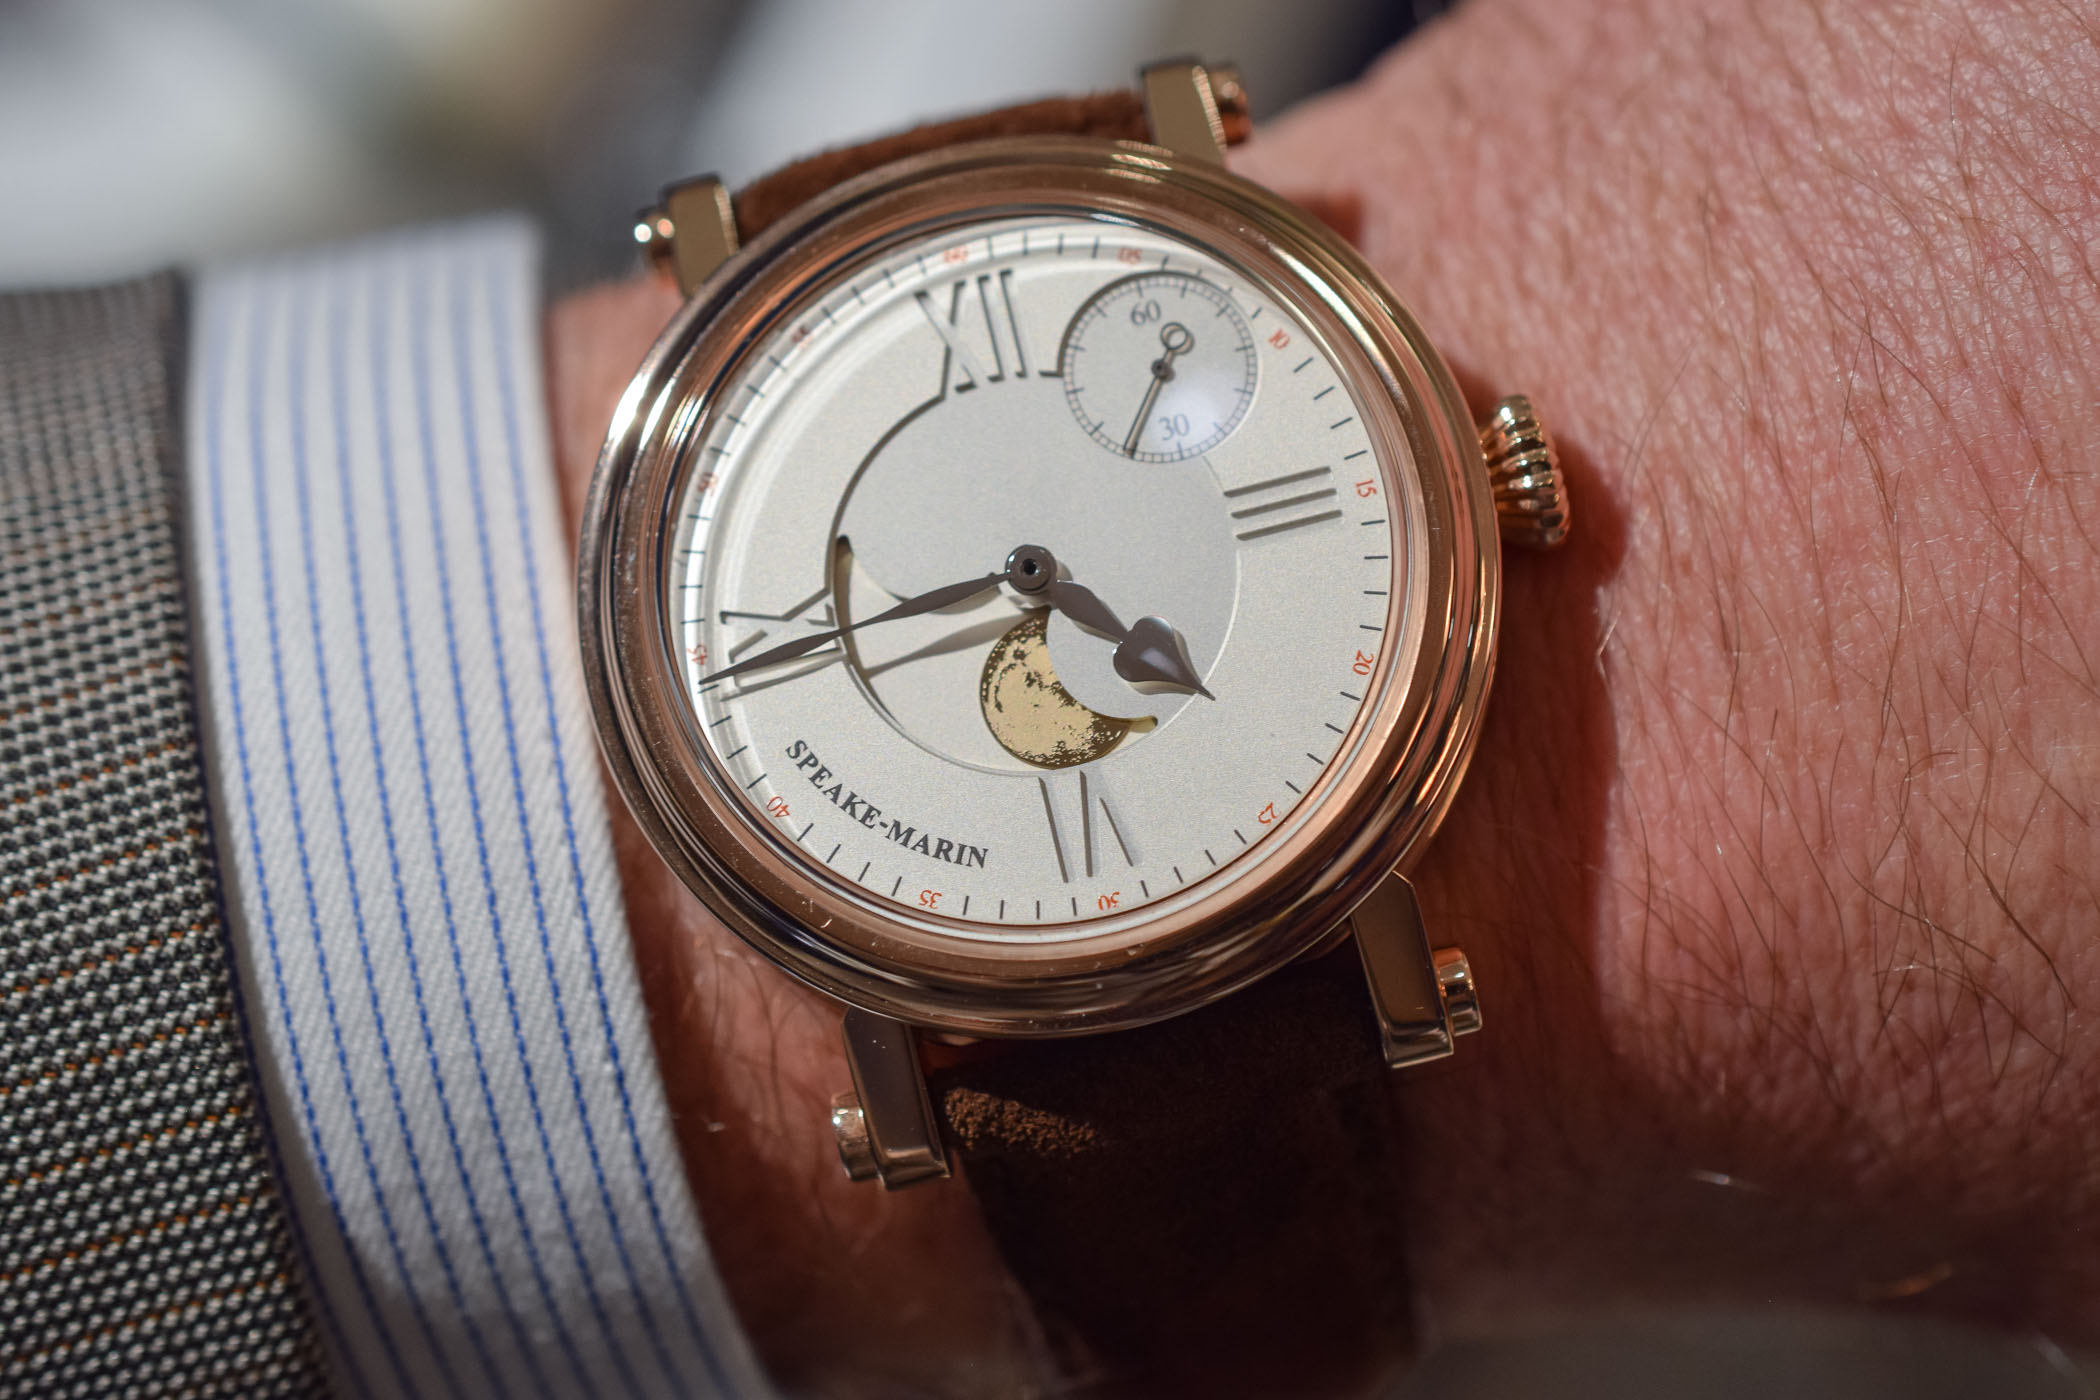 Speake-Marin One-Two Academic Full Moon - 3